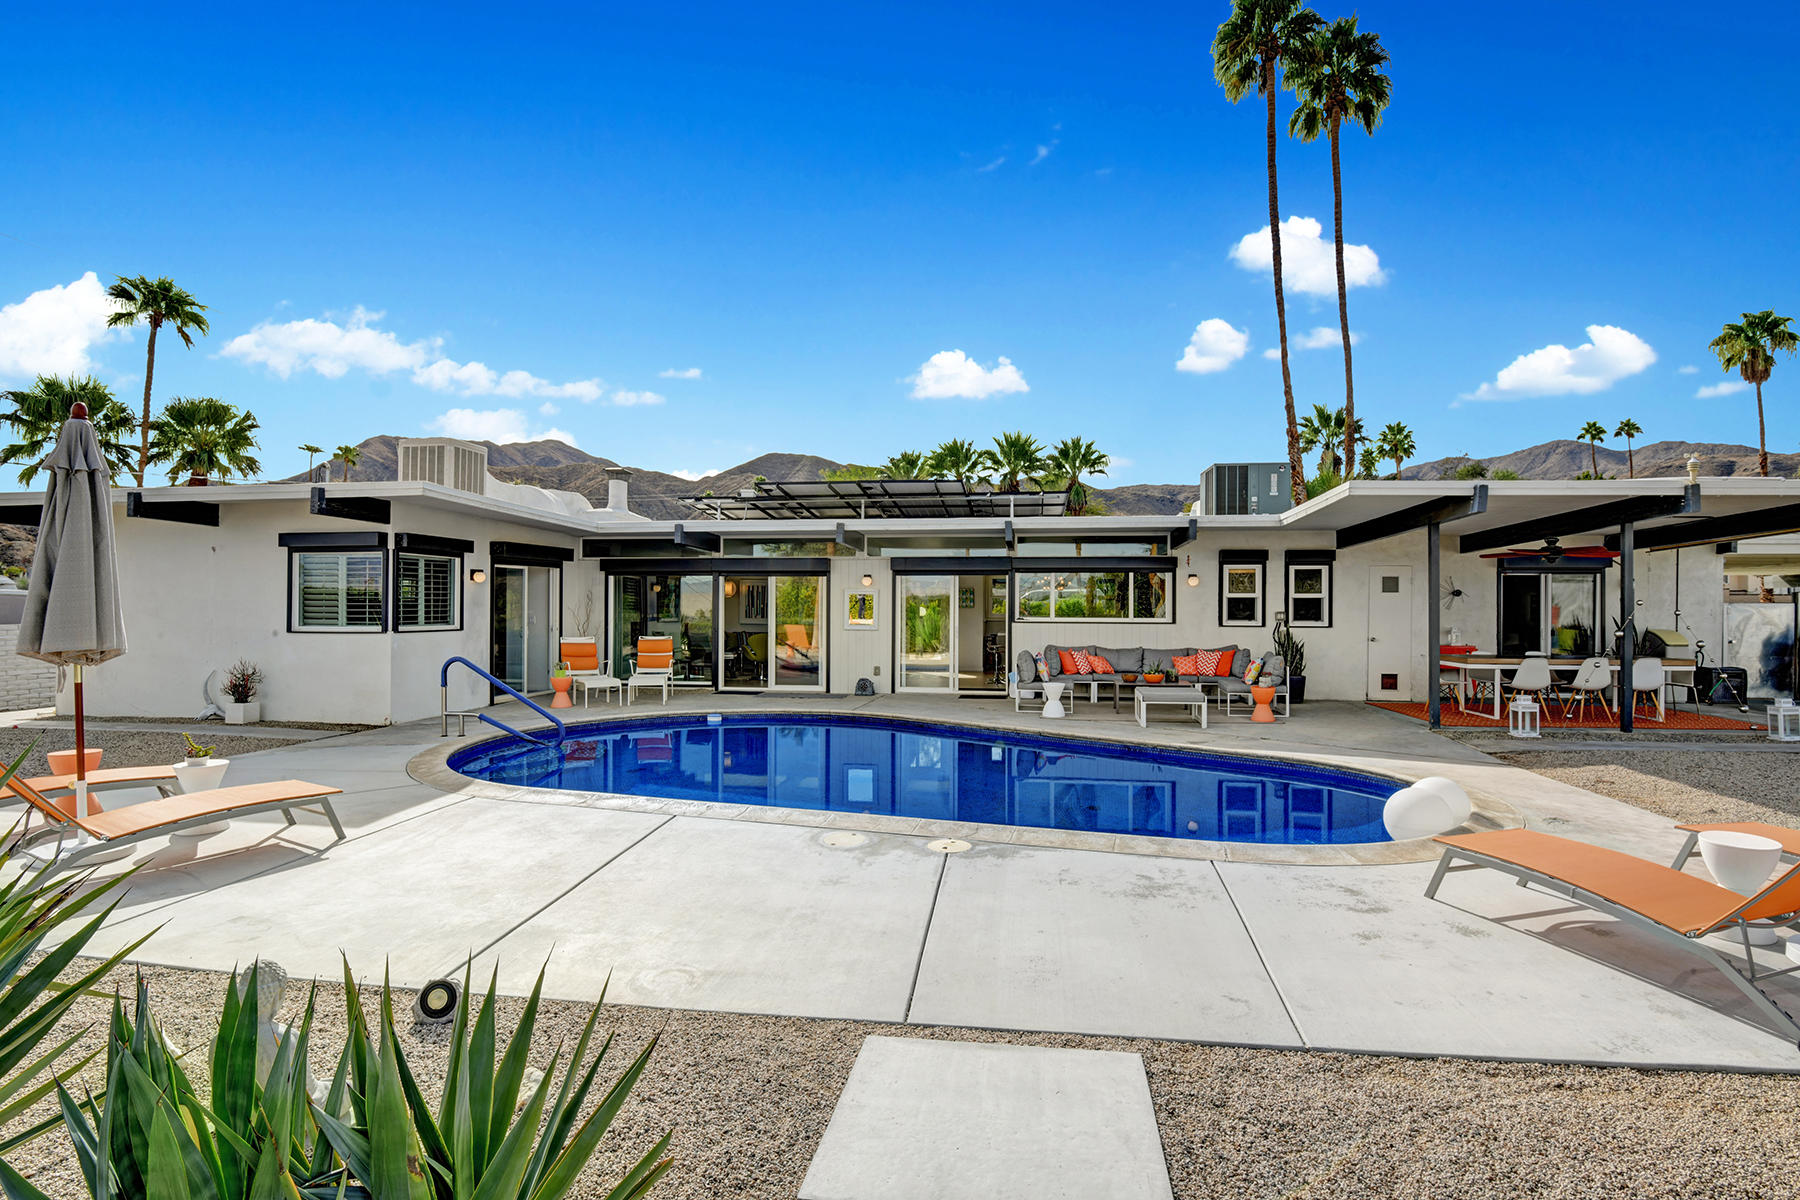 Welcome to 68386 Treasure Trail. Located in the Cathedral City Cove. Unlike any area of the desert The Cove offers a tranquil way of life. This peaceful slice of the desert is accentuated from the moment you pull up to this home. Step through the ficus hedge at the perimeter of the property and you are immediately greeted by the Mid-Century architecture so many seek in their desert home. Clerestory windows grace the front of the home along with the immediately striking post and beam construction. Once inside the home your gaze goes directly to the backyard and the readily available desert vistas. This wall of windows that allows for the indoor outdoor lifestyle wraps around the entire back of the home. Step outside into the backyard and big views of Mt. San Jacinto open up immediately. Updated flooring, and finishes reach every inch of this home. Beyond that you have improved infrastructure with updated plumbing and electrical. You'll find massive savings on heating and cooling bills with every window and door having been replaced. To top it off you've got solar on the home bringing energy efficiency to a level expected yet not often found in the desert. This home is being offered with furniture available. Be sure to check out the 3-D tour. Soon you can be floating in the pool, sitting by the firepit, or going on strolls through the neighborhood. Call today to arrange for your private showing.